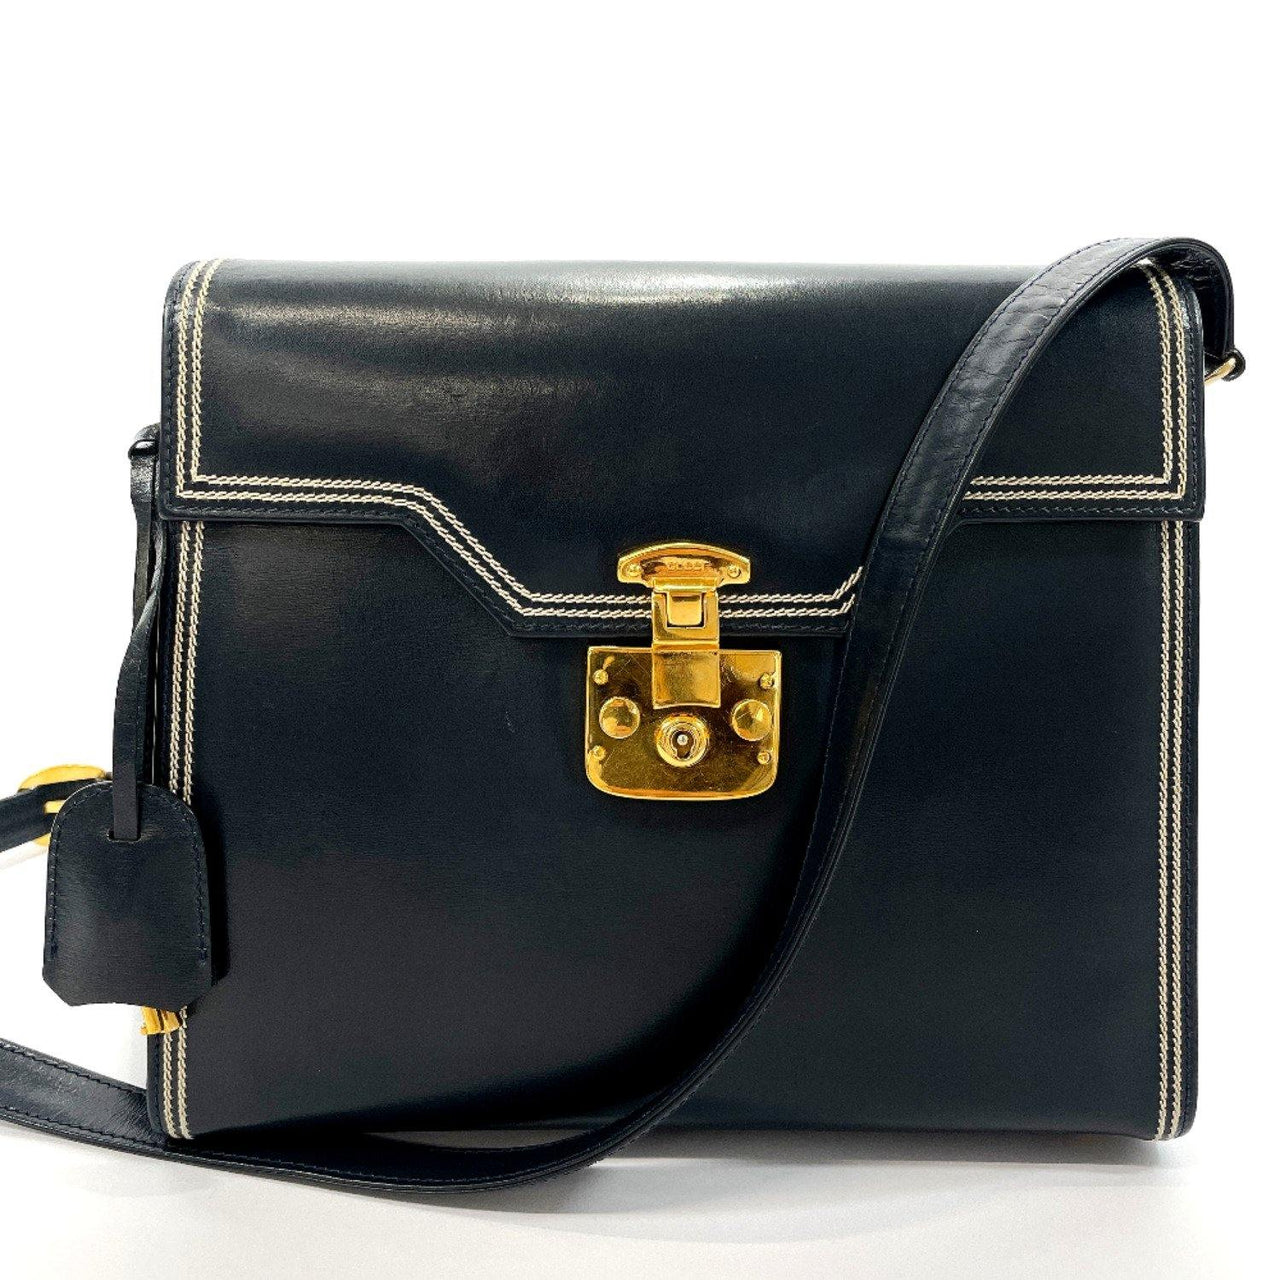 GUCCI Shoulder Bag 00146 1504 Ready lock vintage leather Navy Women Used - JP-BRANDS.com